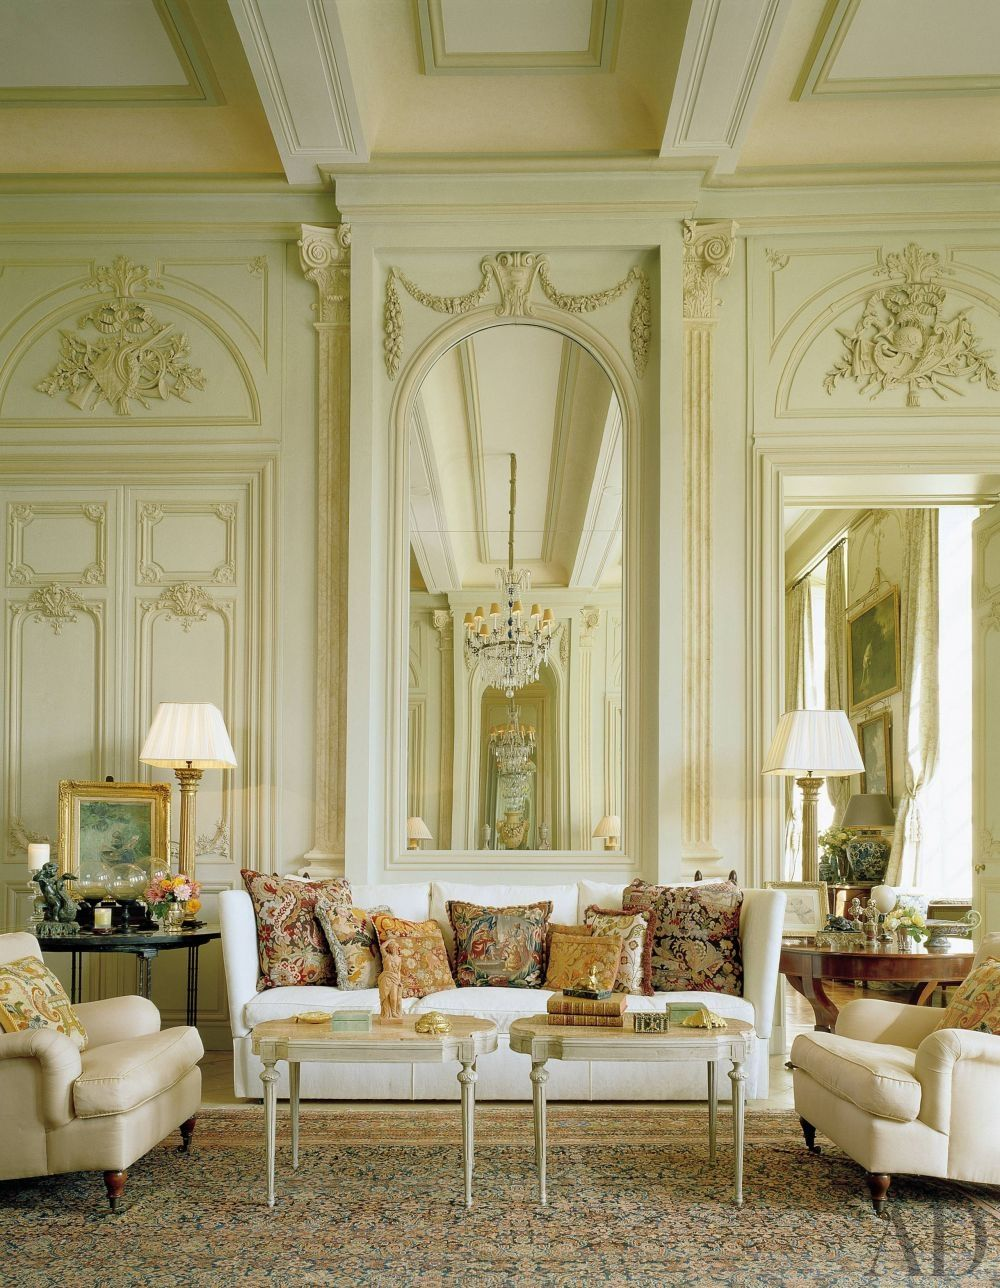 TRADITIONAL LIVING ROOM BY TIMOTHY CORRIGAN INC. In the grand salon ...